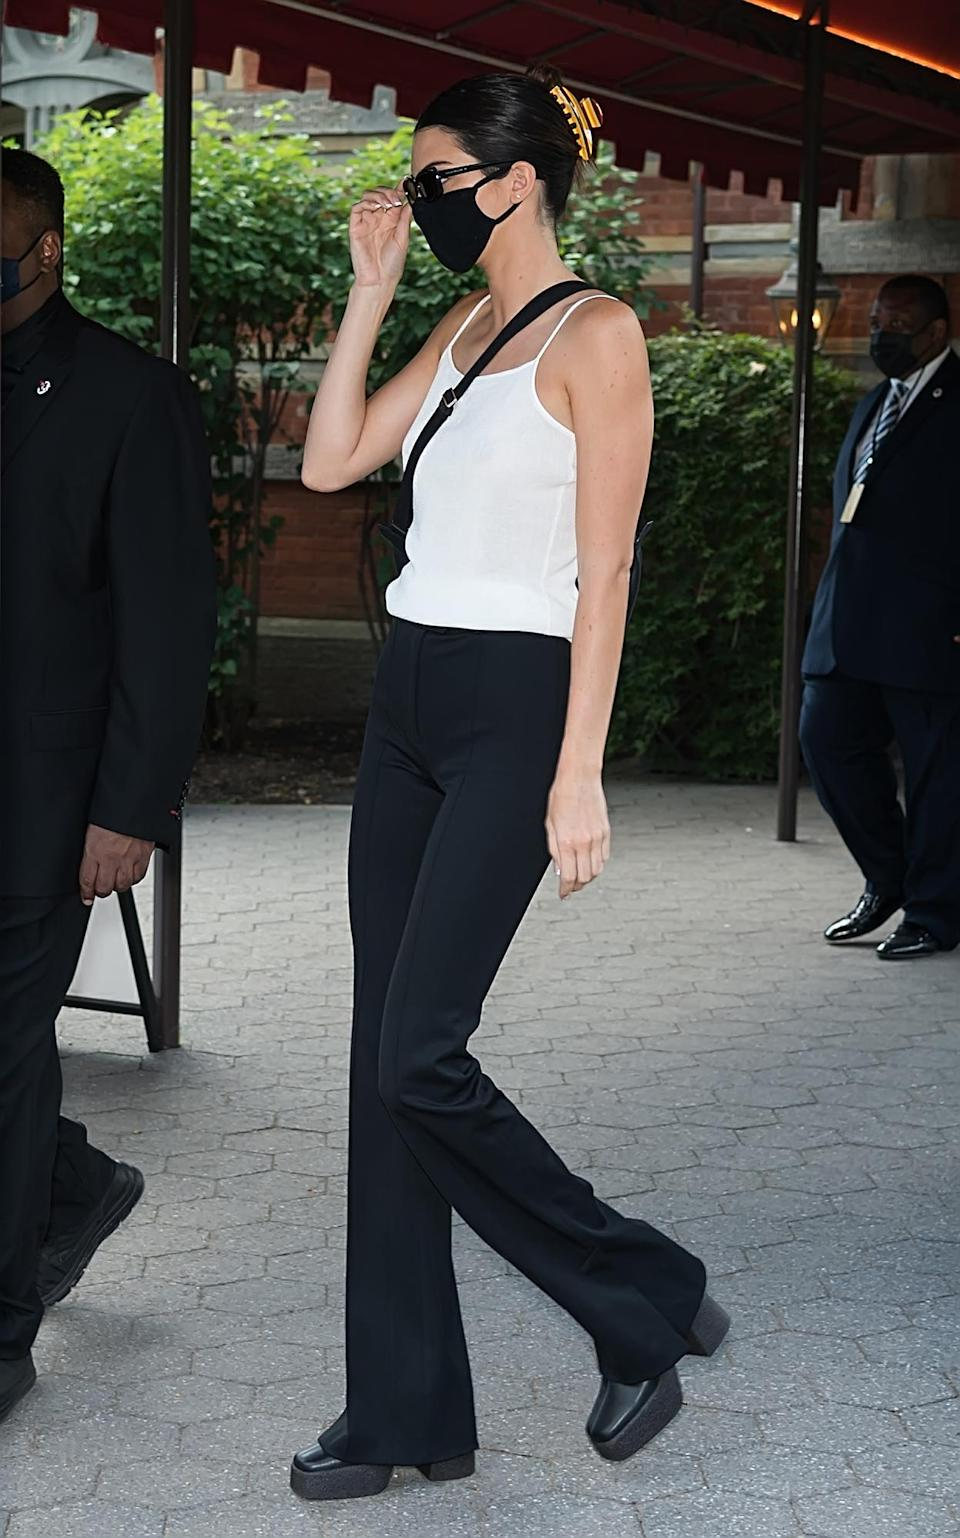 Kendall Jenner is spotted in a casual attire during New York Fashion Week. - Credit: Ouzounova / SplashNews.com